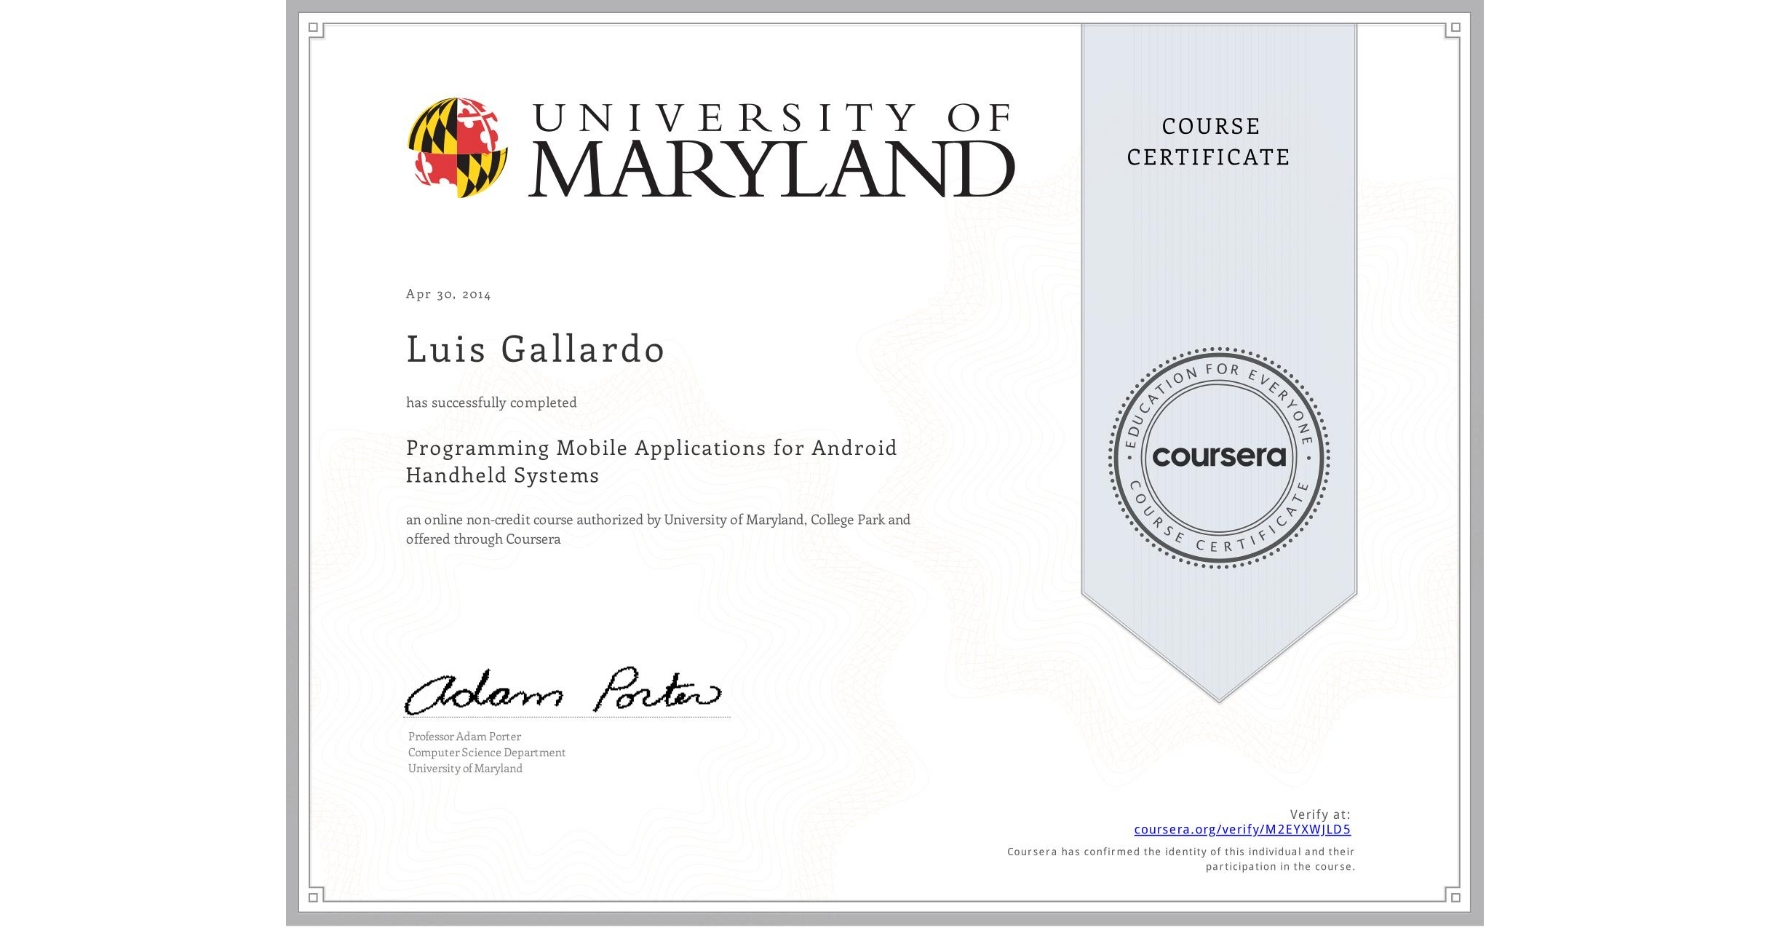 View certificate for Luis Gallardo, Programming Mobile Applications for Android Handheld Systems, an online non-credit course authorized by University of Maryland, College Park and offered through Coursera